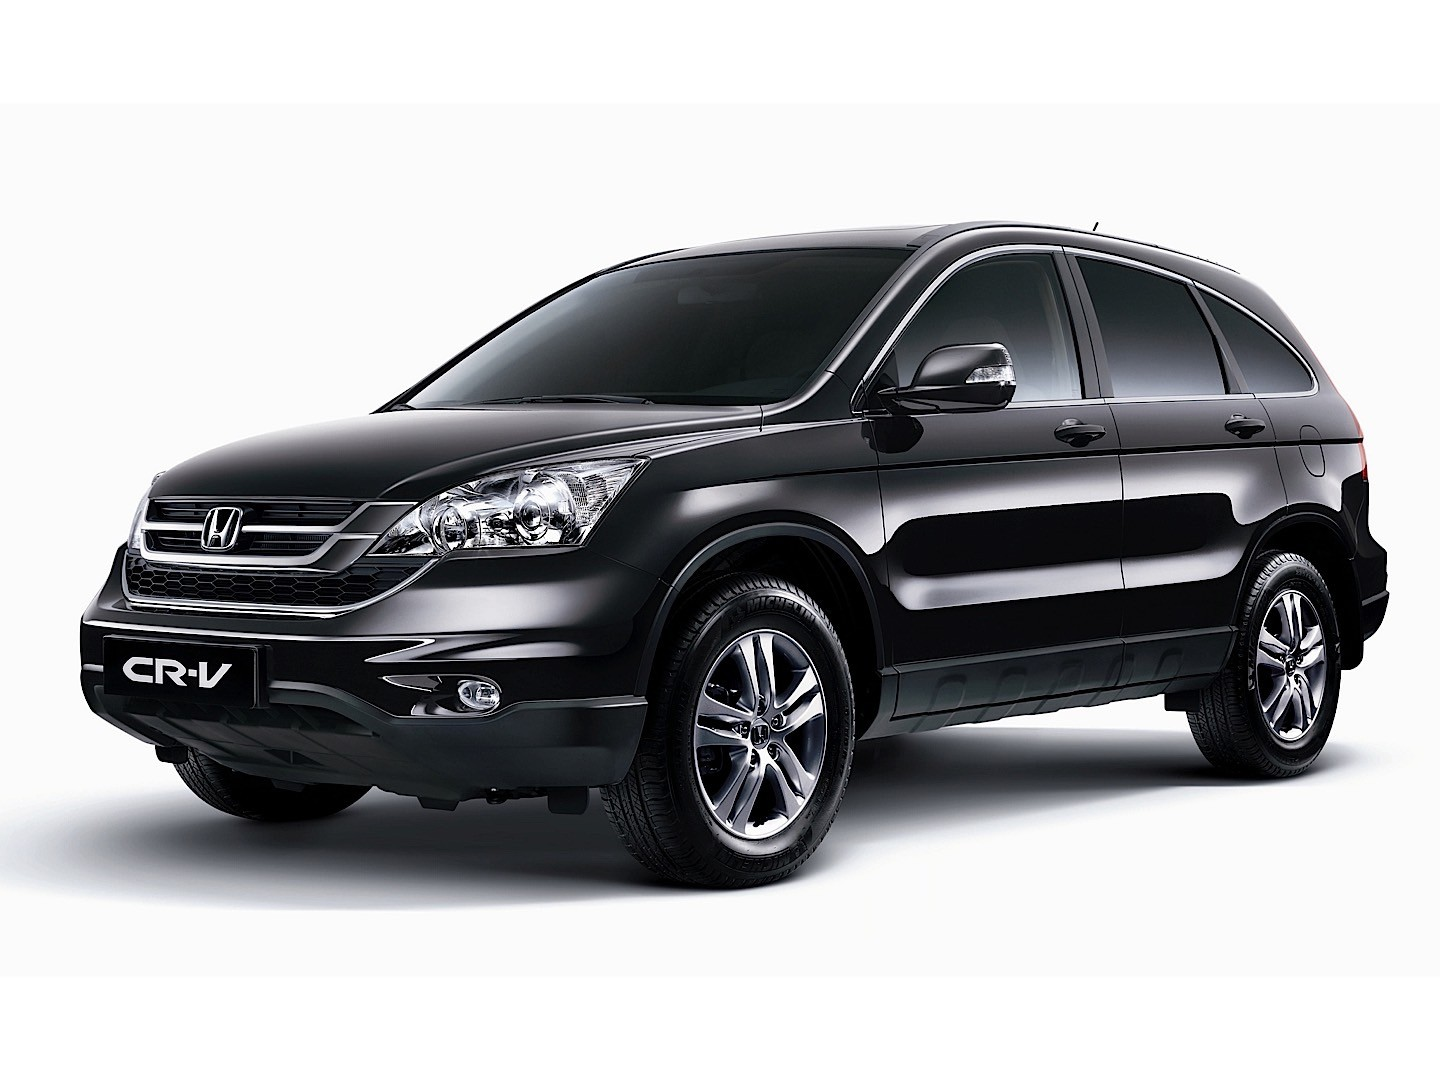 honda cr v specs 2010 2011 autoevolution. Black Bedroom Furniture Sets. Home Design Ideas